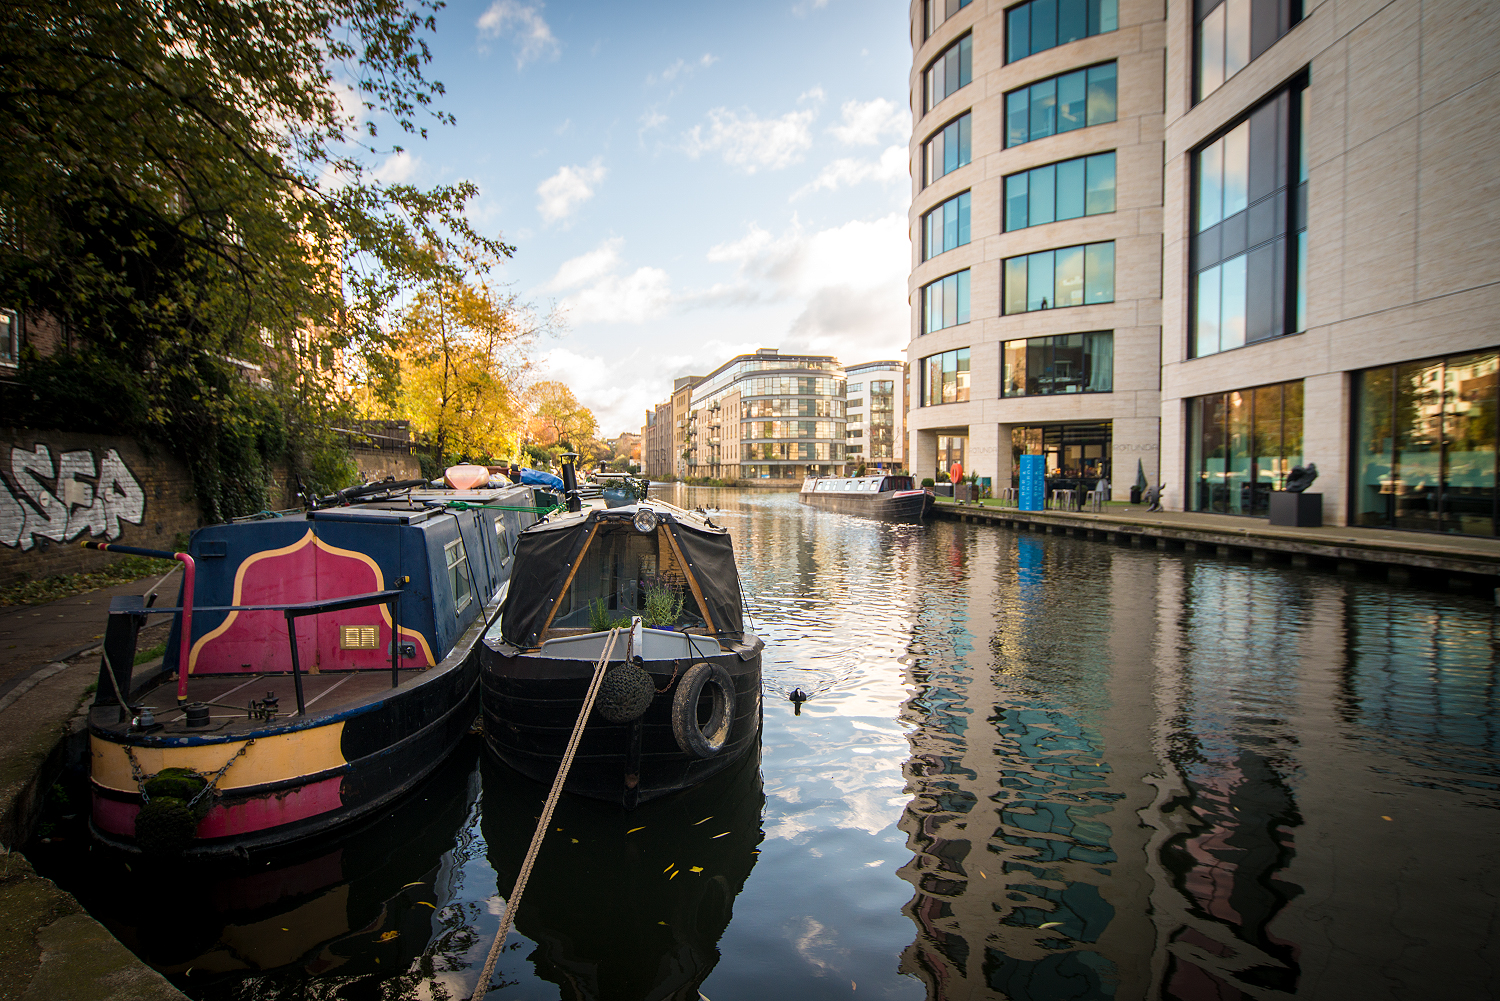 Der Regent's Canal in London